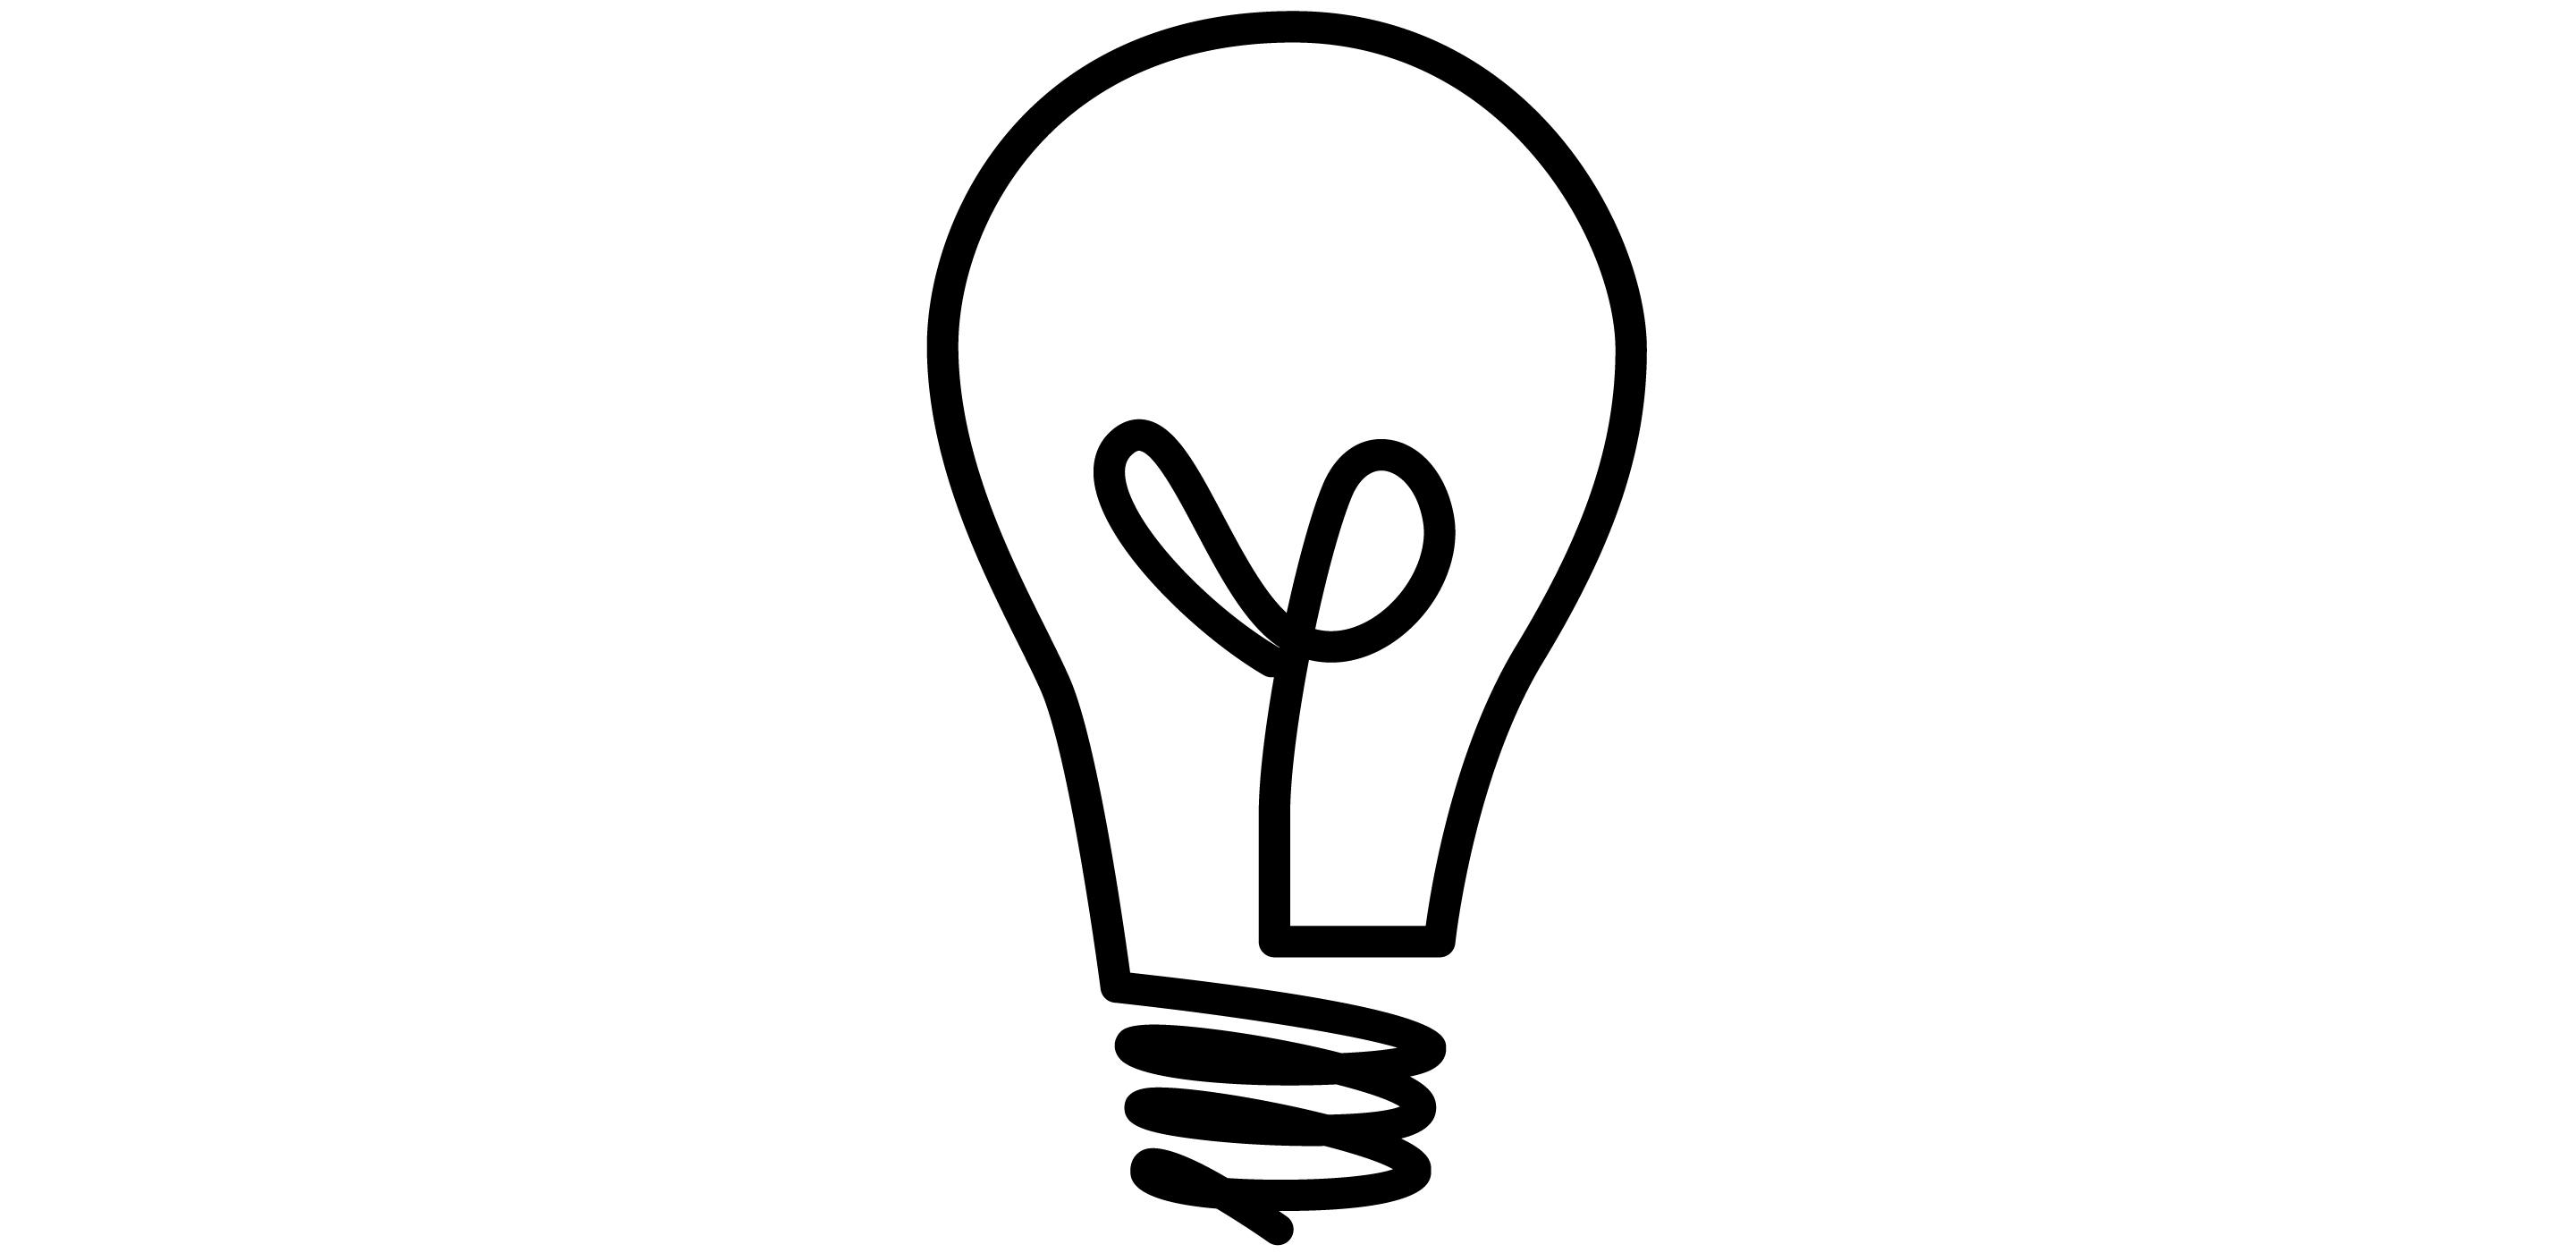 Light Bulb clipart vector #8